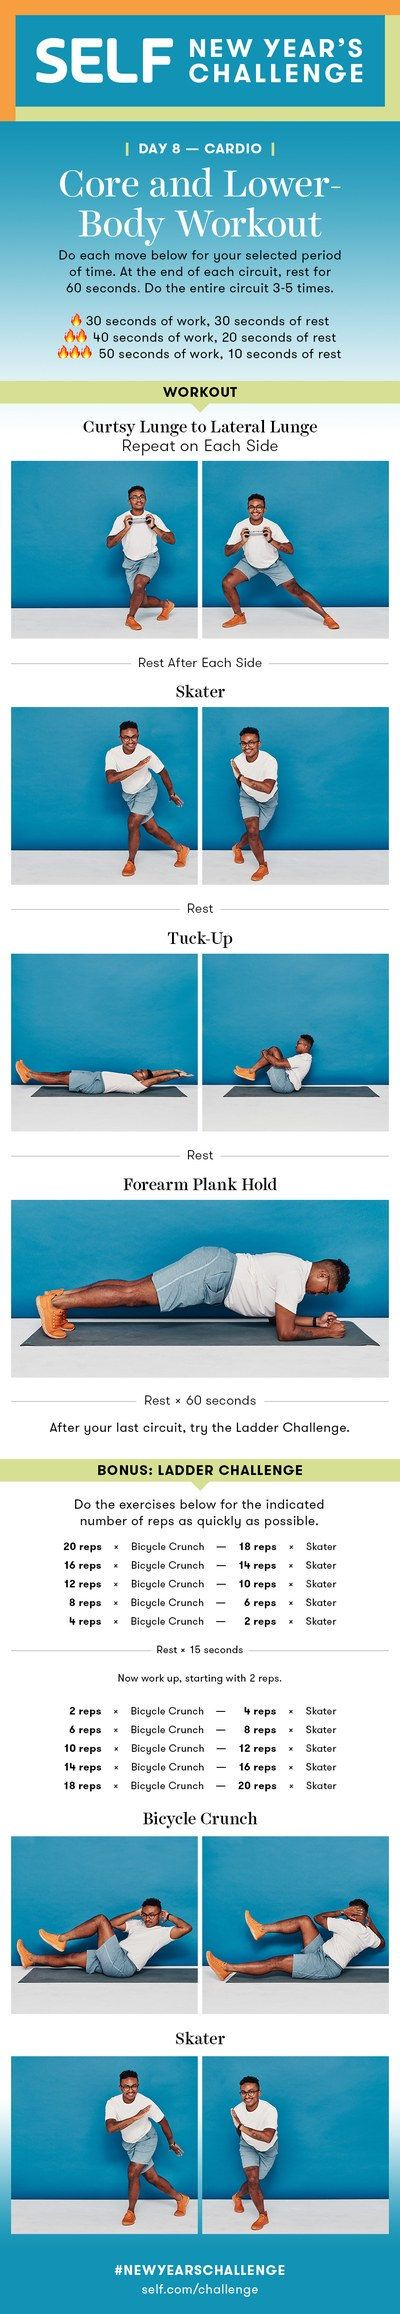 25-Minute Cardio Abs and Lower-Body Workout